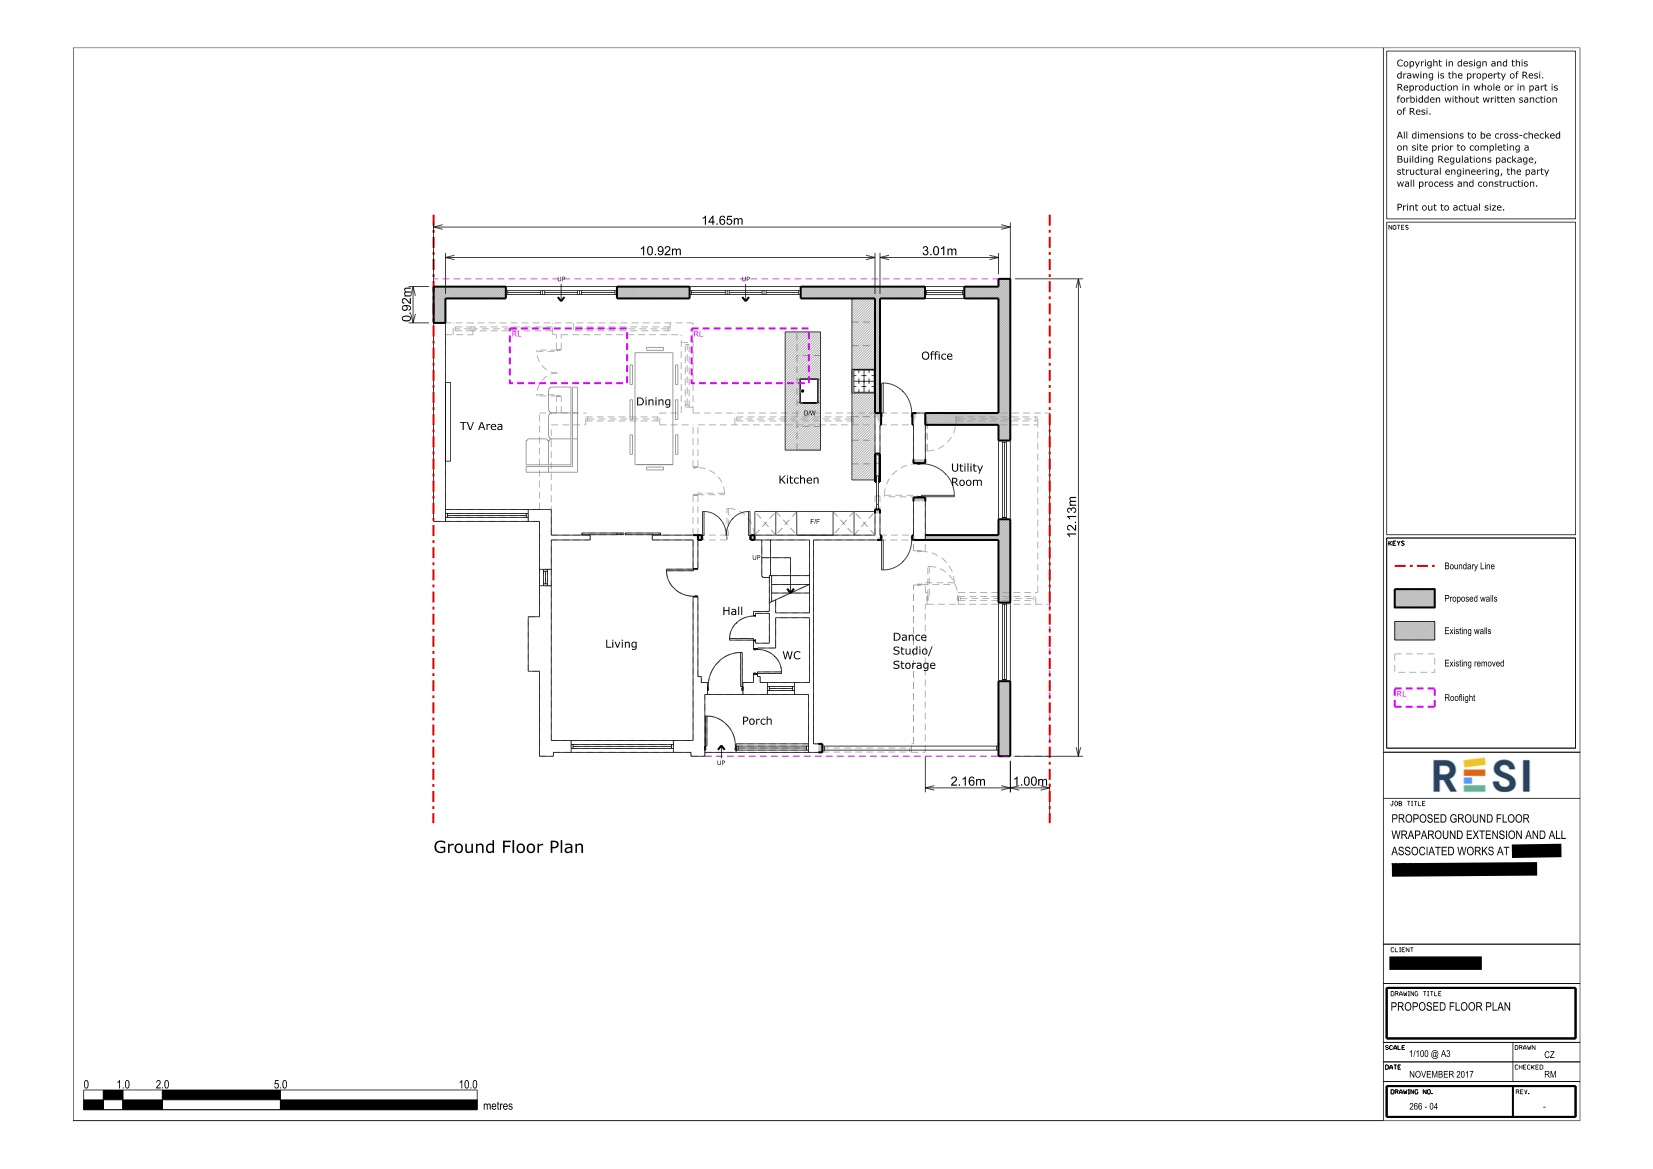 Architectural drawings 14   ground floor plan